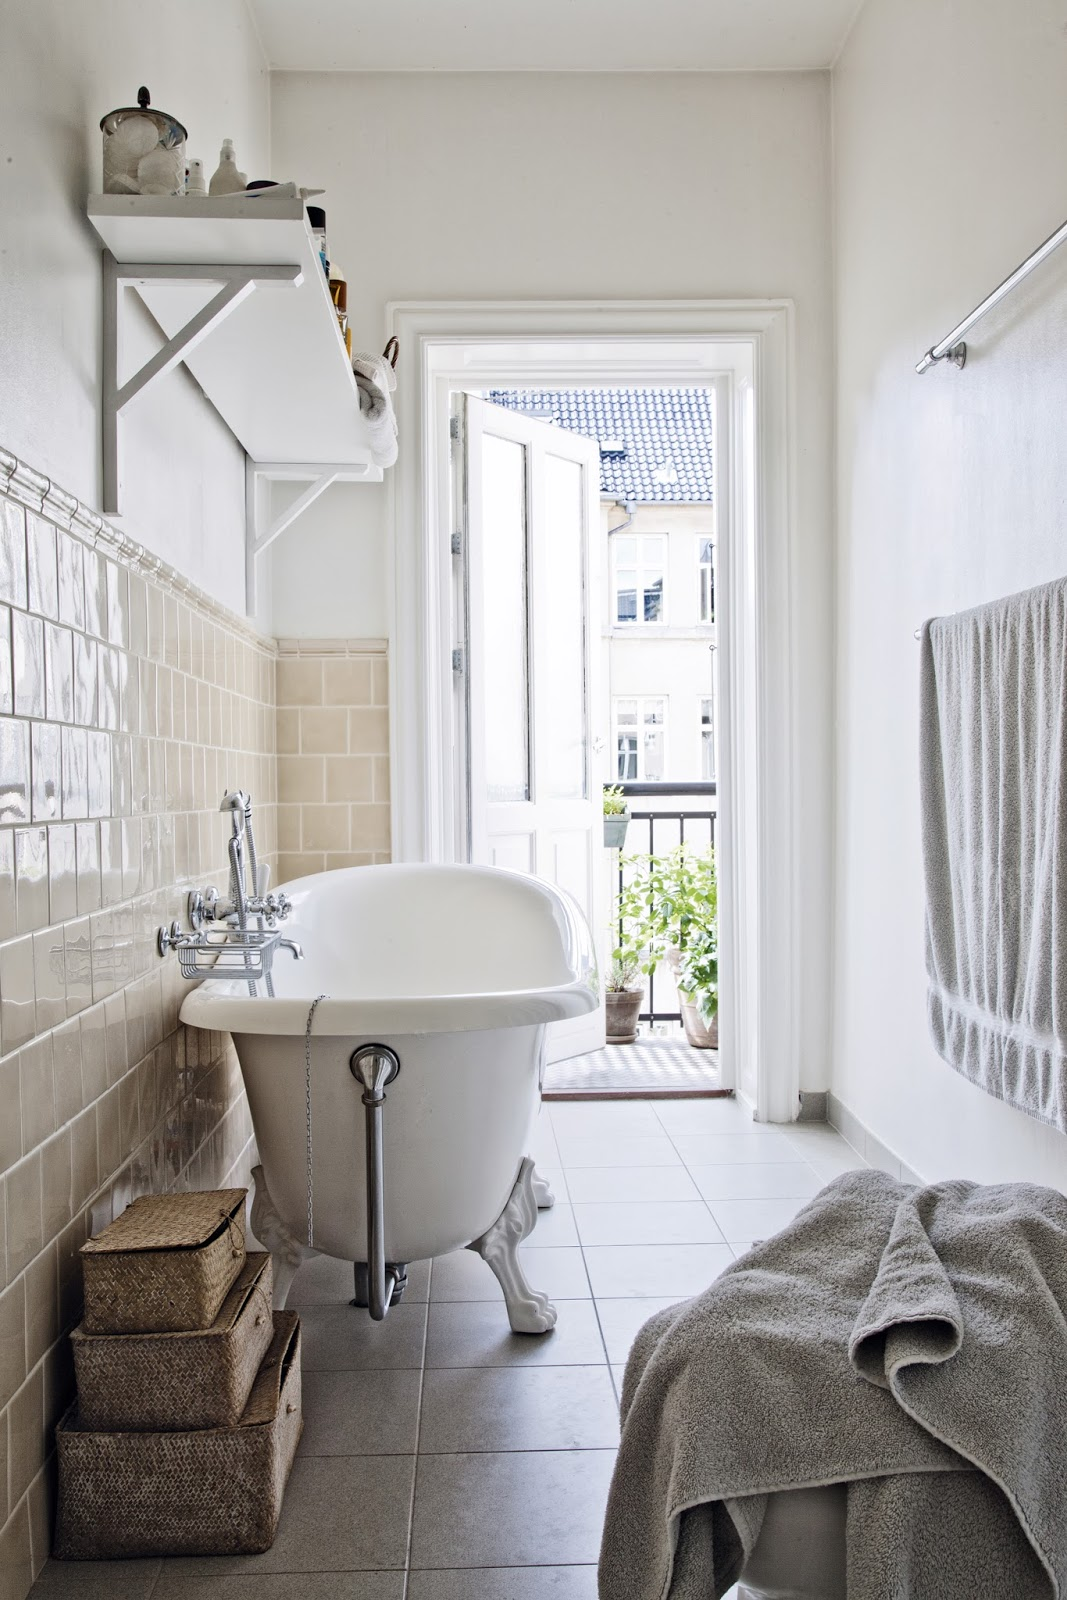 vintage bath tub,  retro bathroom,